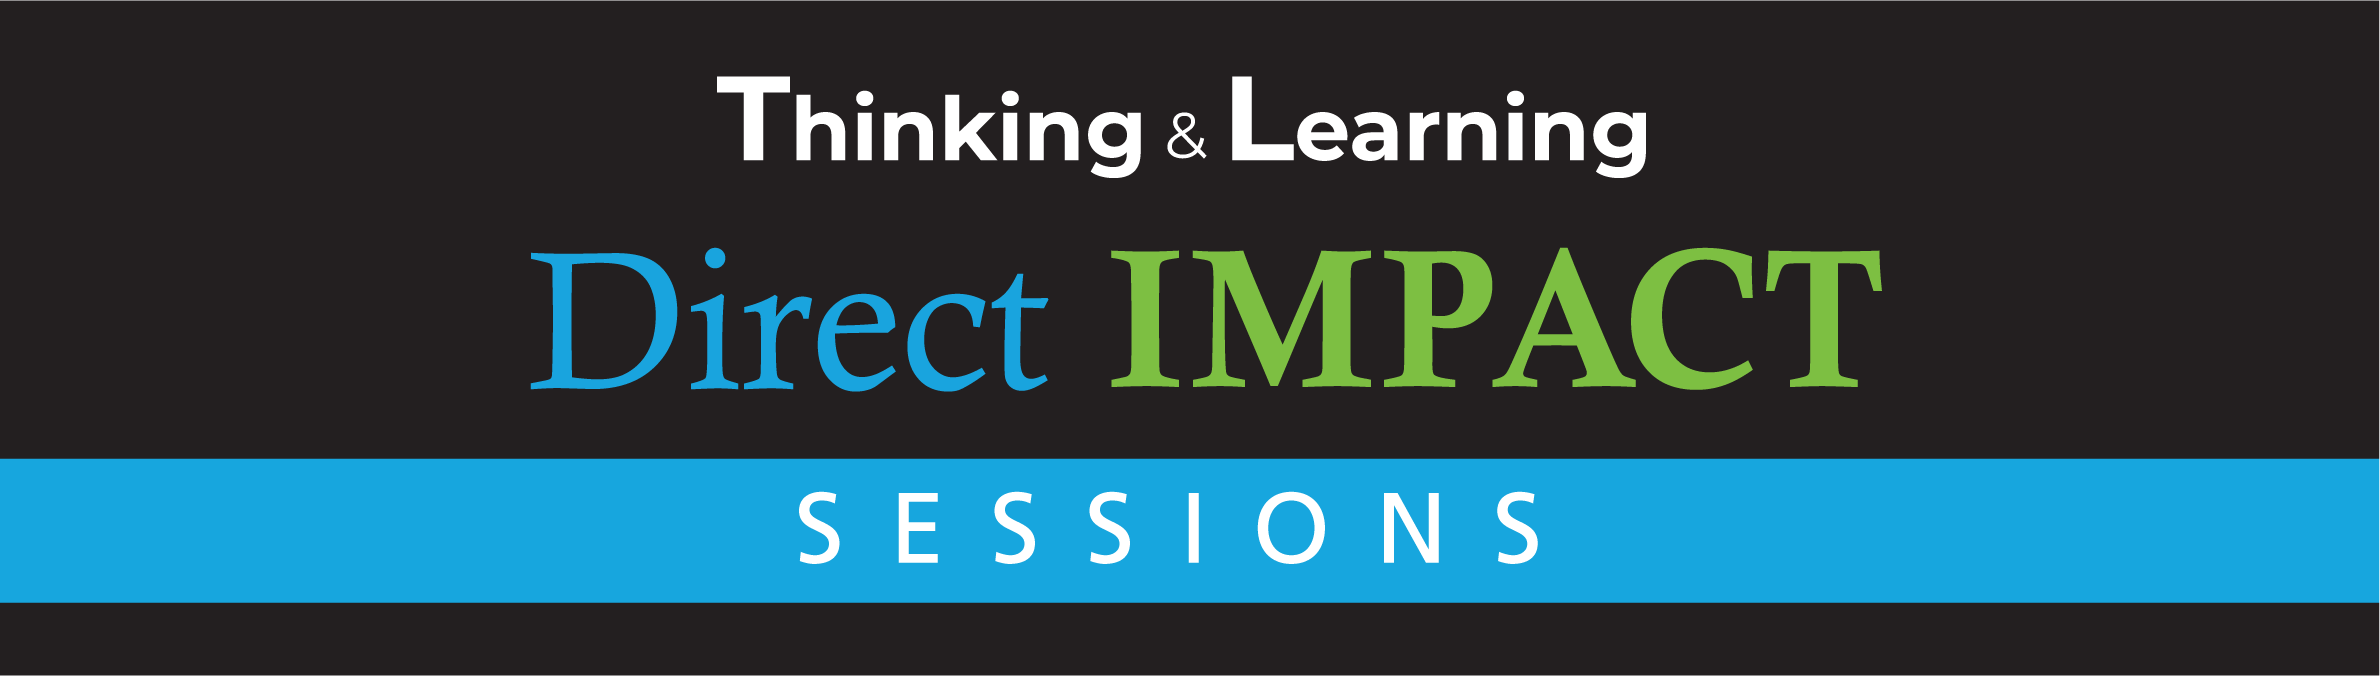 Thinking & Learning Immediate Impact sessions